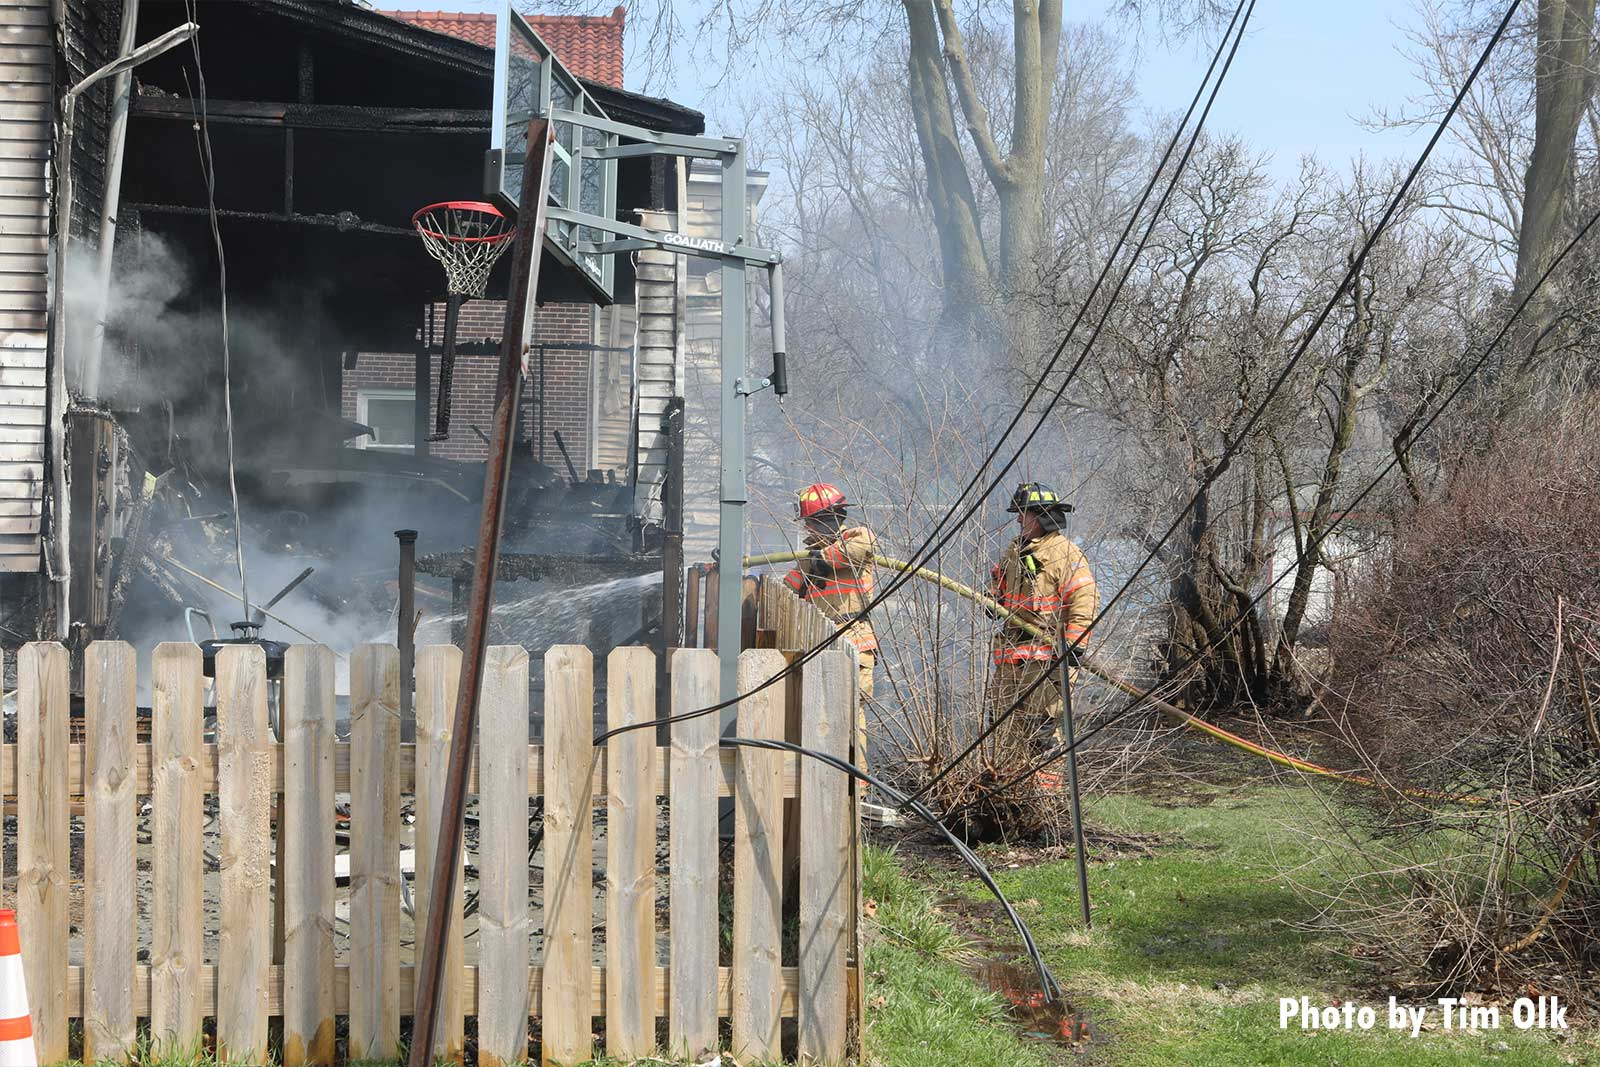 Firefighters administer water on the exterior of the fire